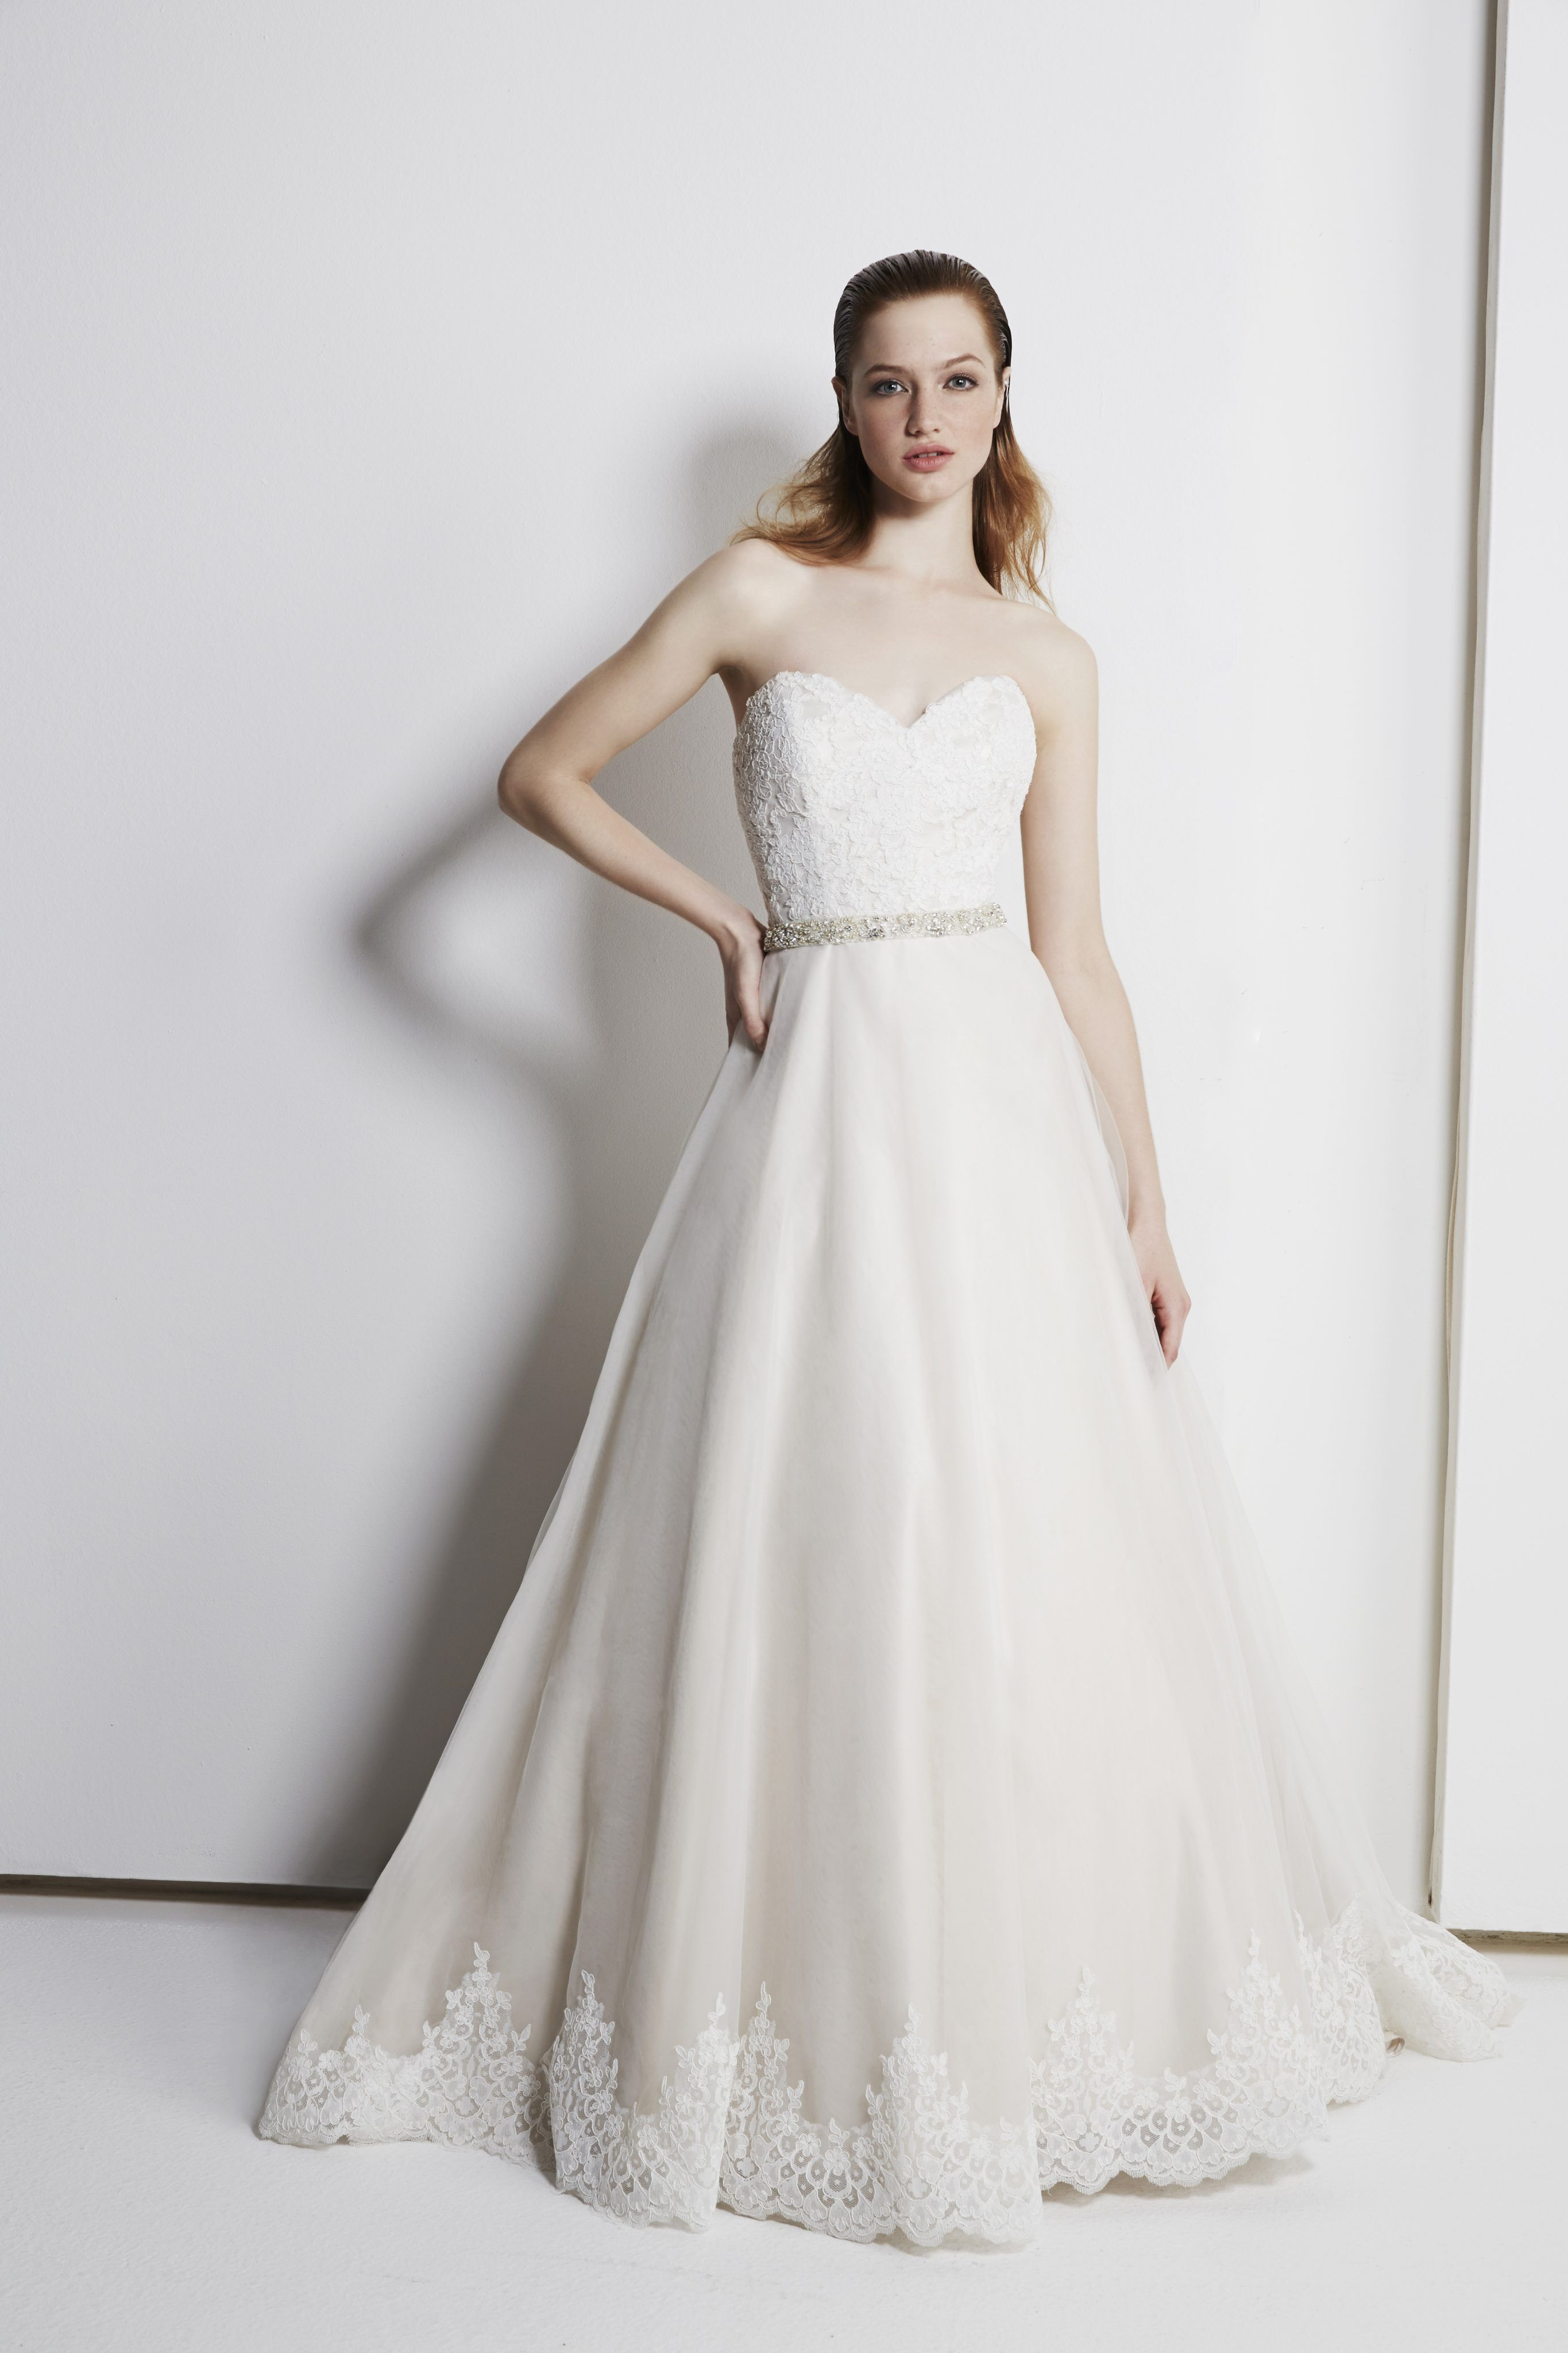 Pearl belt for wedding dress  Sweetheart strapless Aline gown with lace skirt detail and beaded